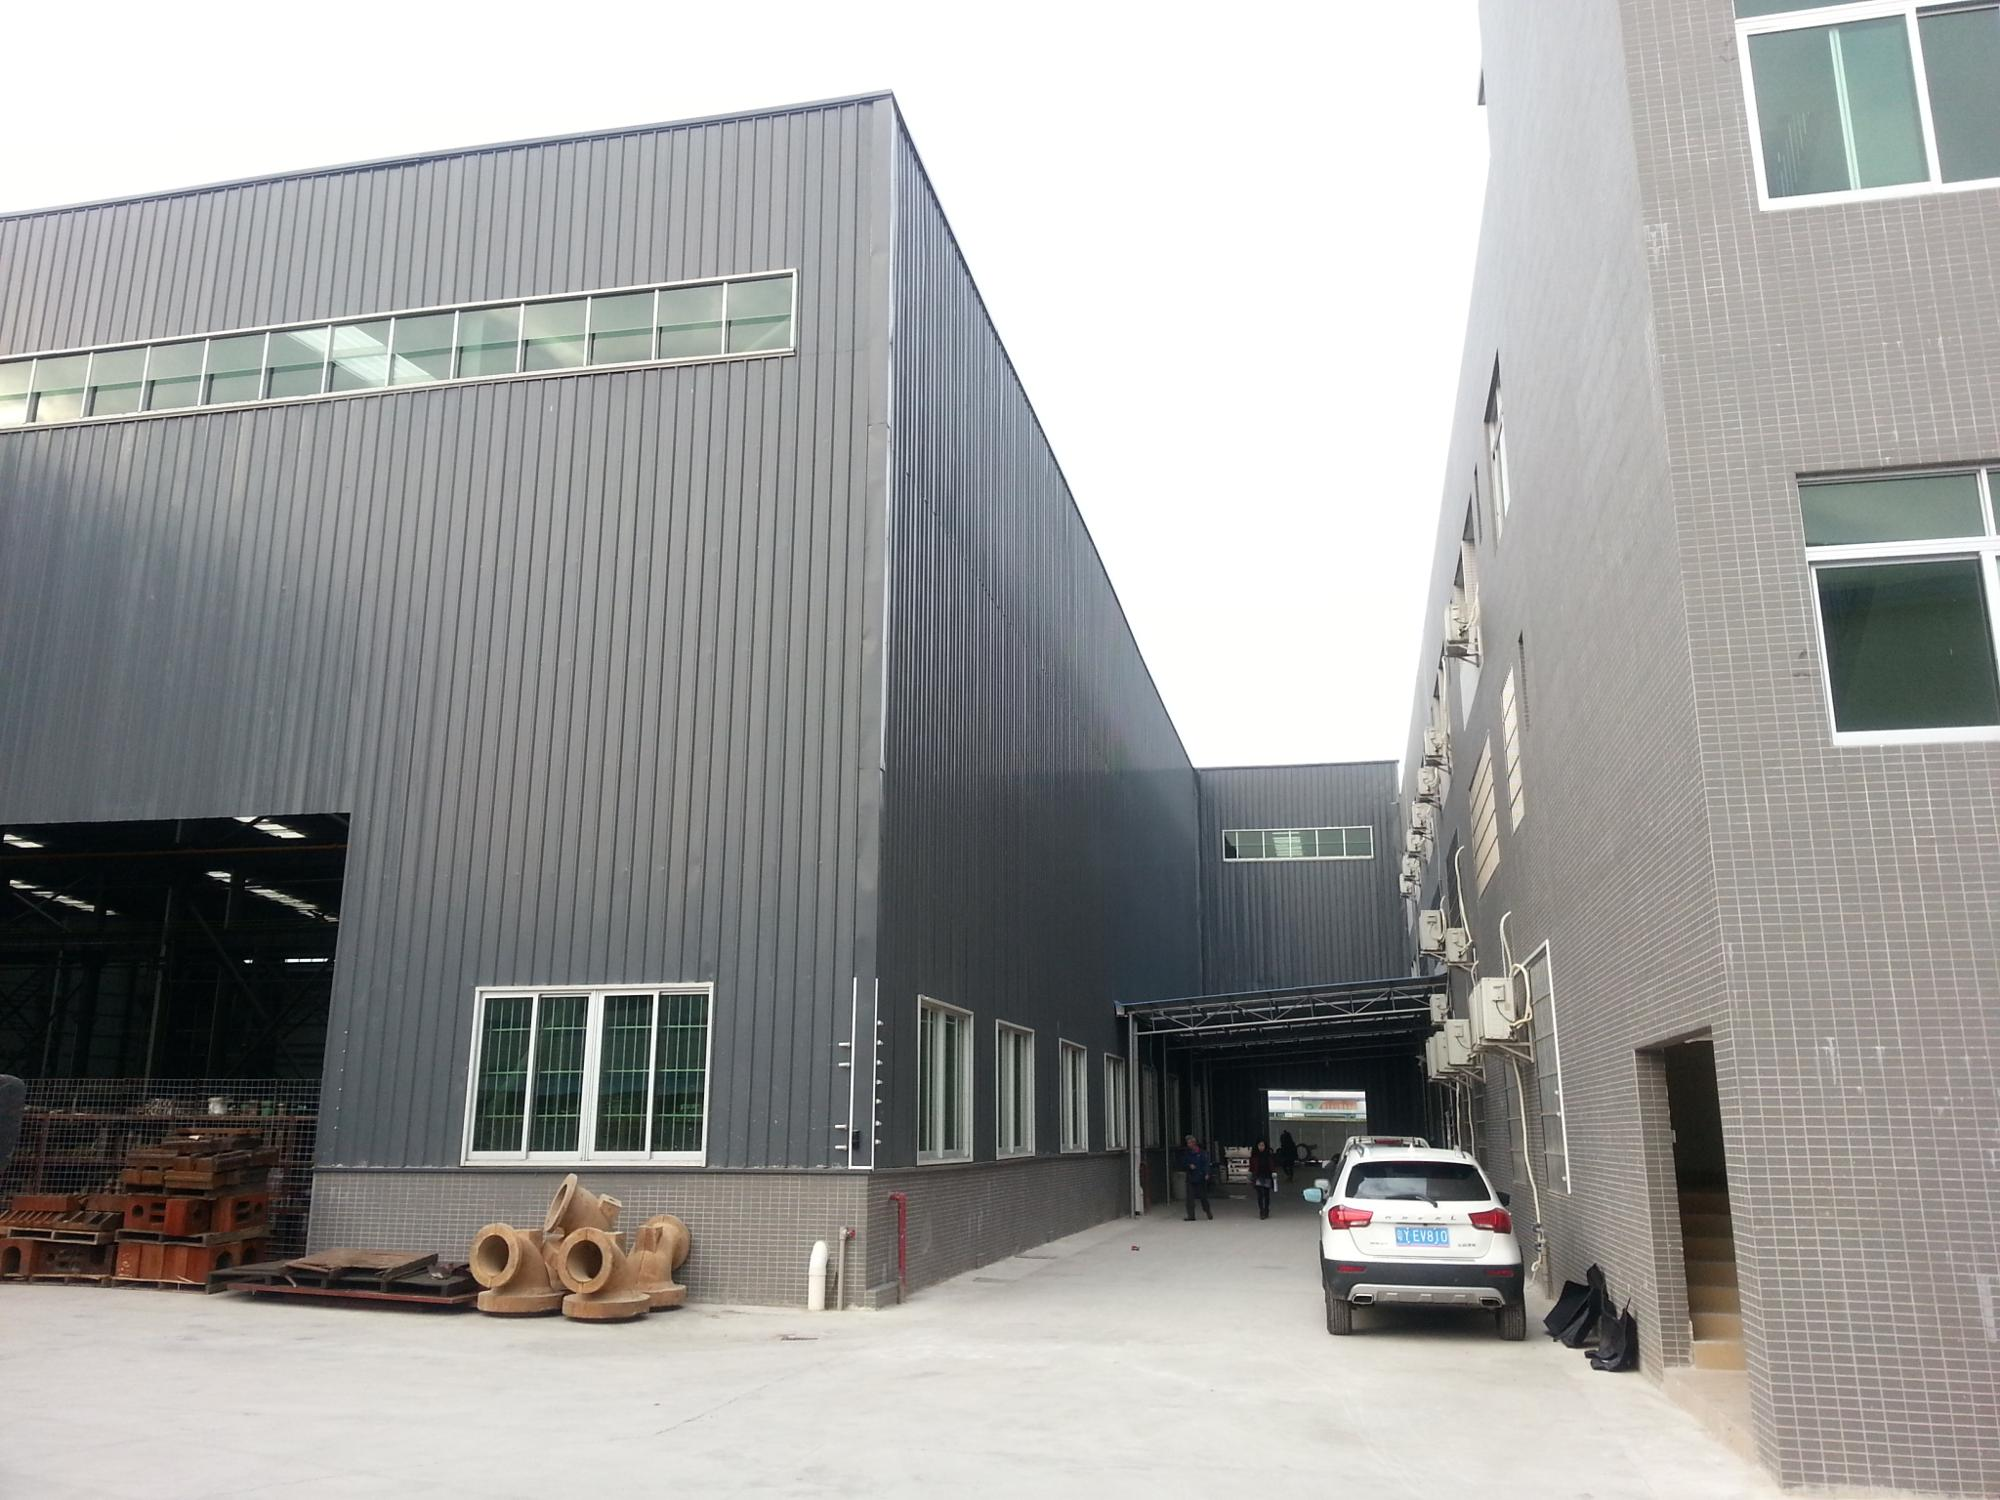 600T - 6000T Press manufacturers extruder squeeze profile window door Aluminum Extrusion